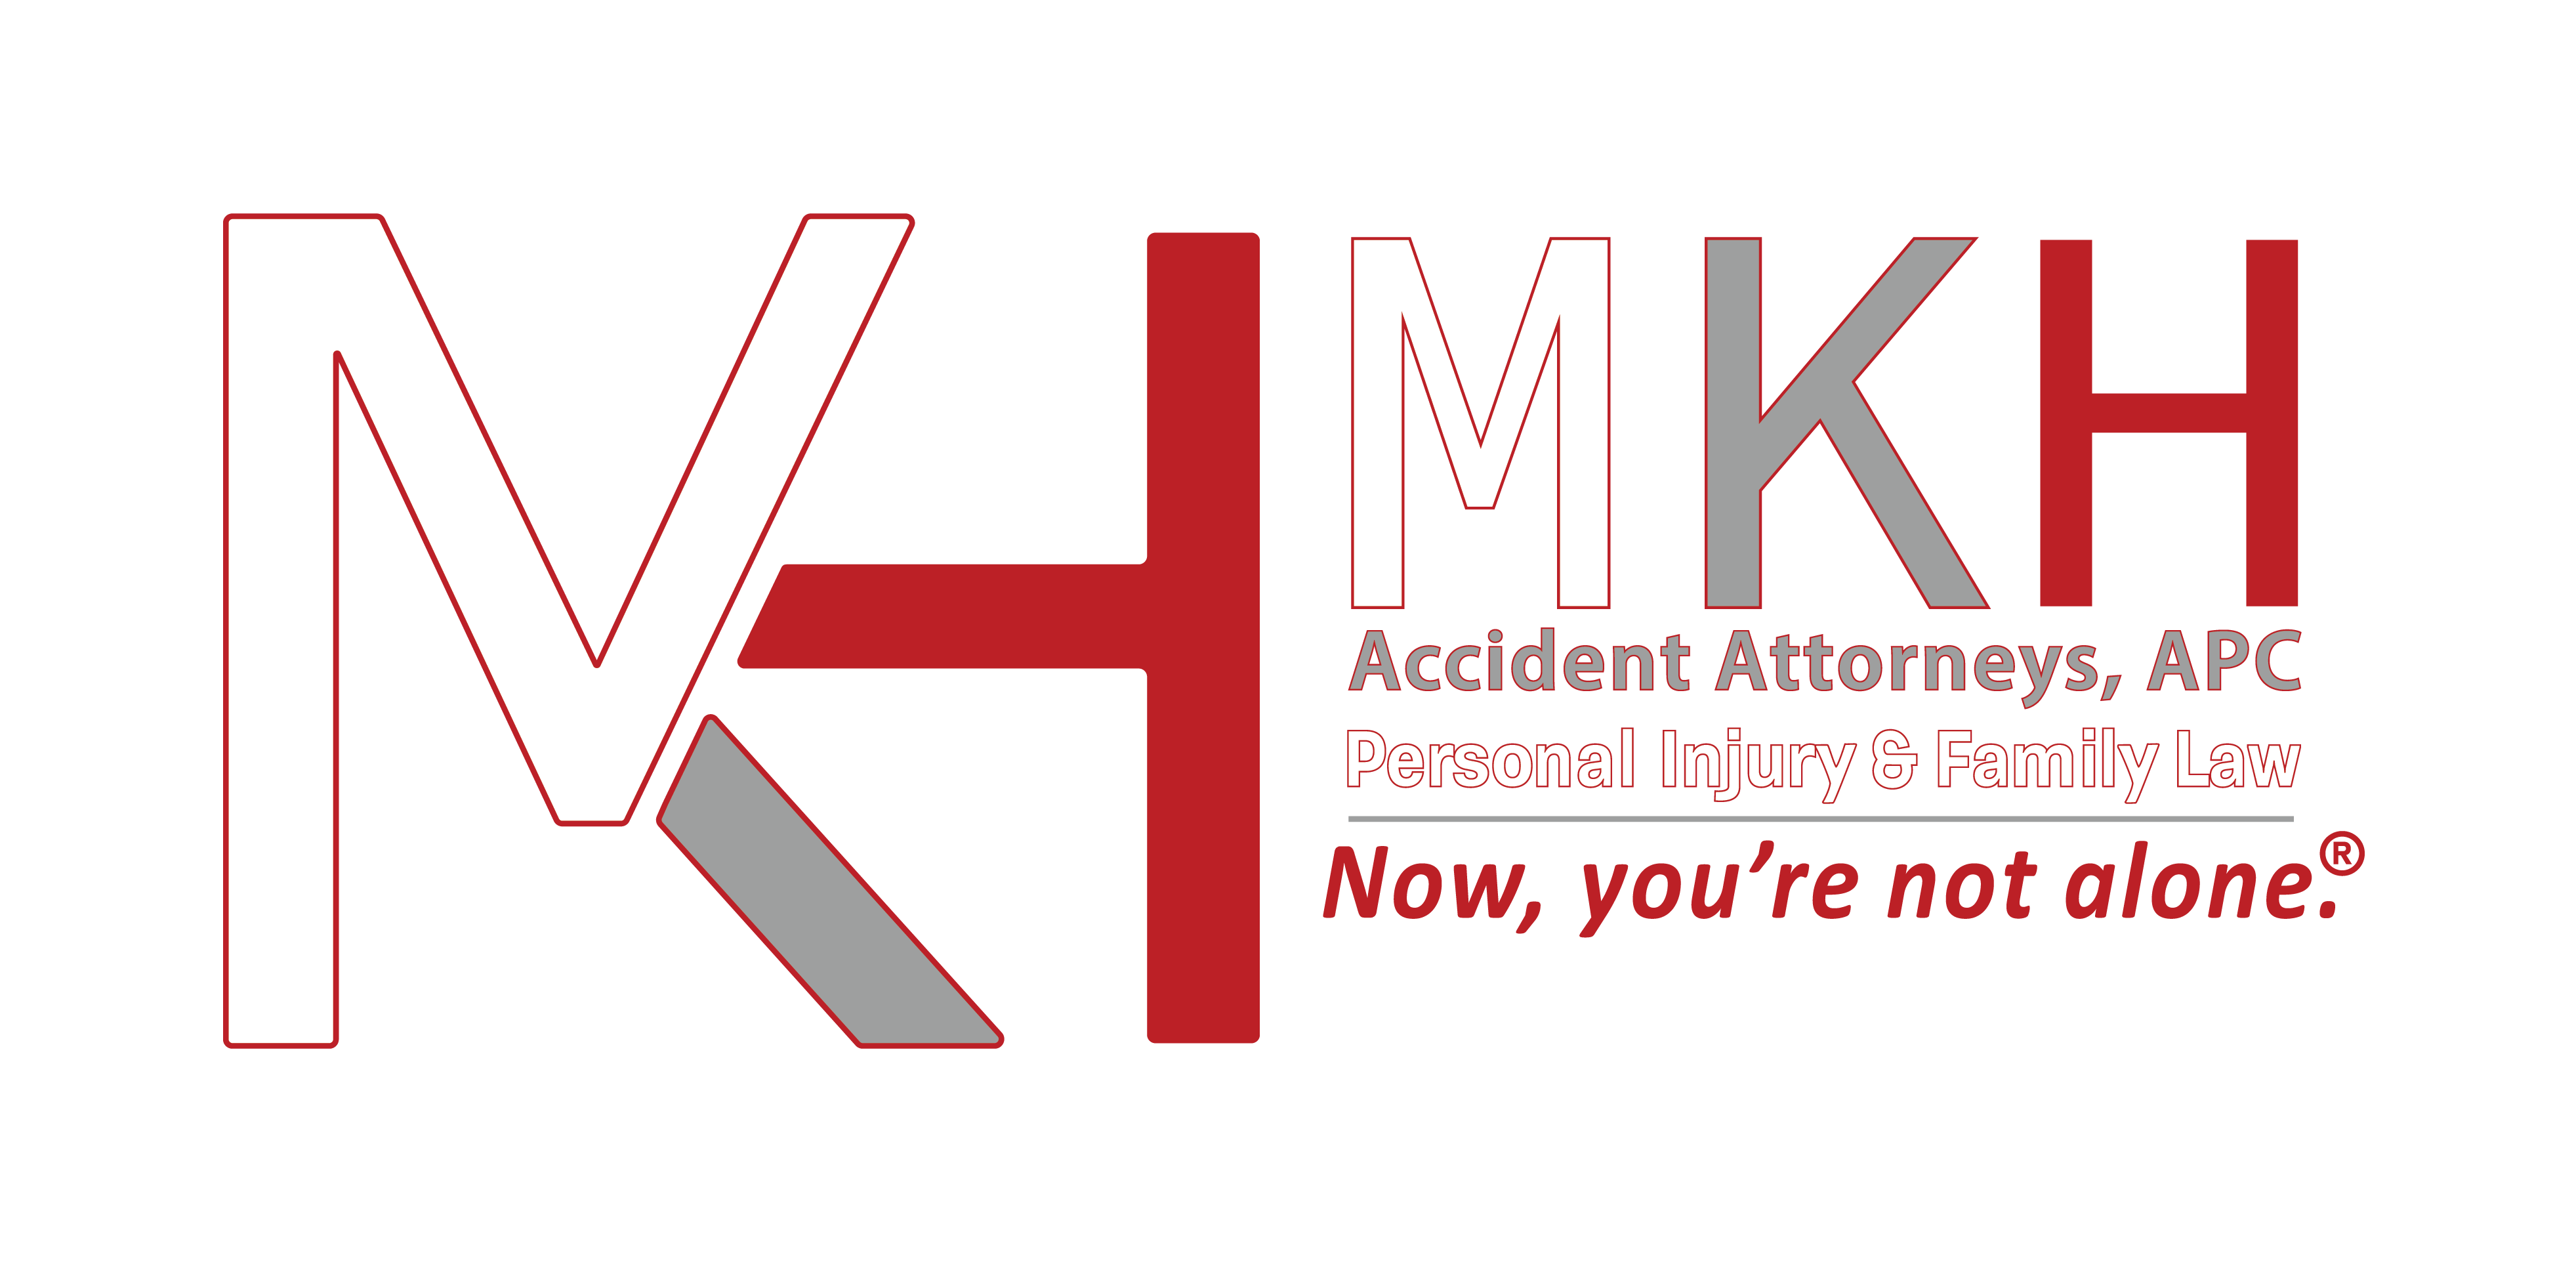 Personal Injury & Family Law Attorneys in Southern California -- MKH Accident Attorneys APC